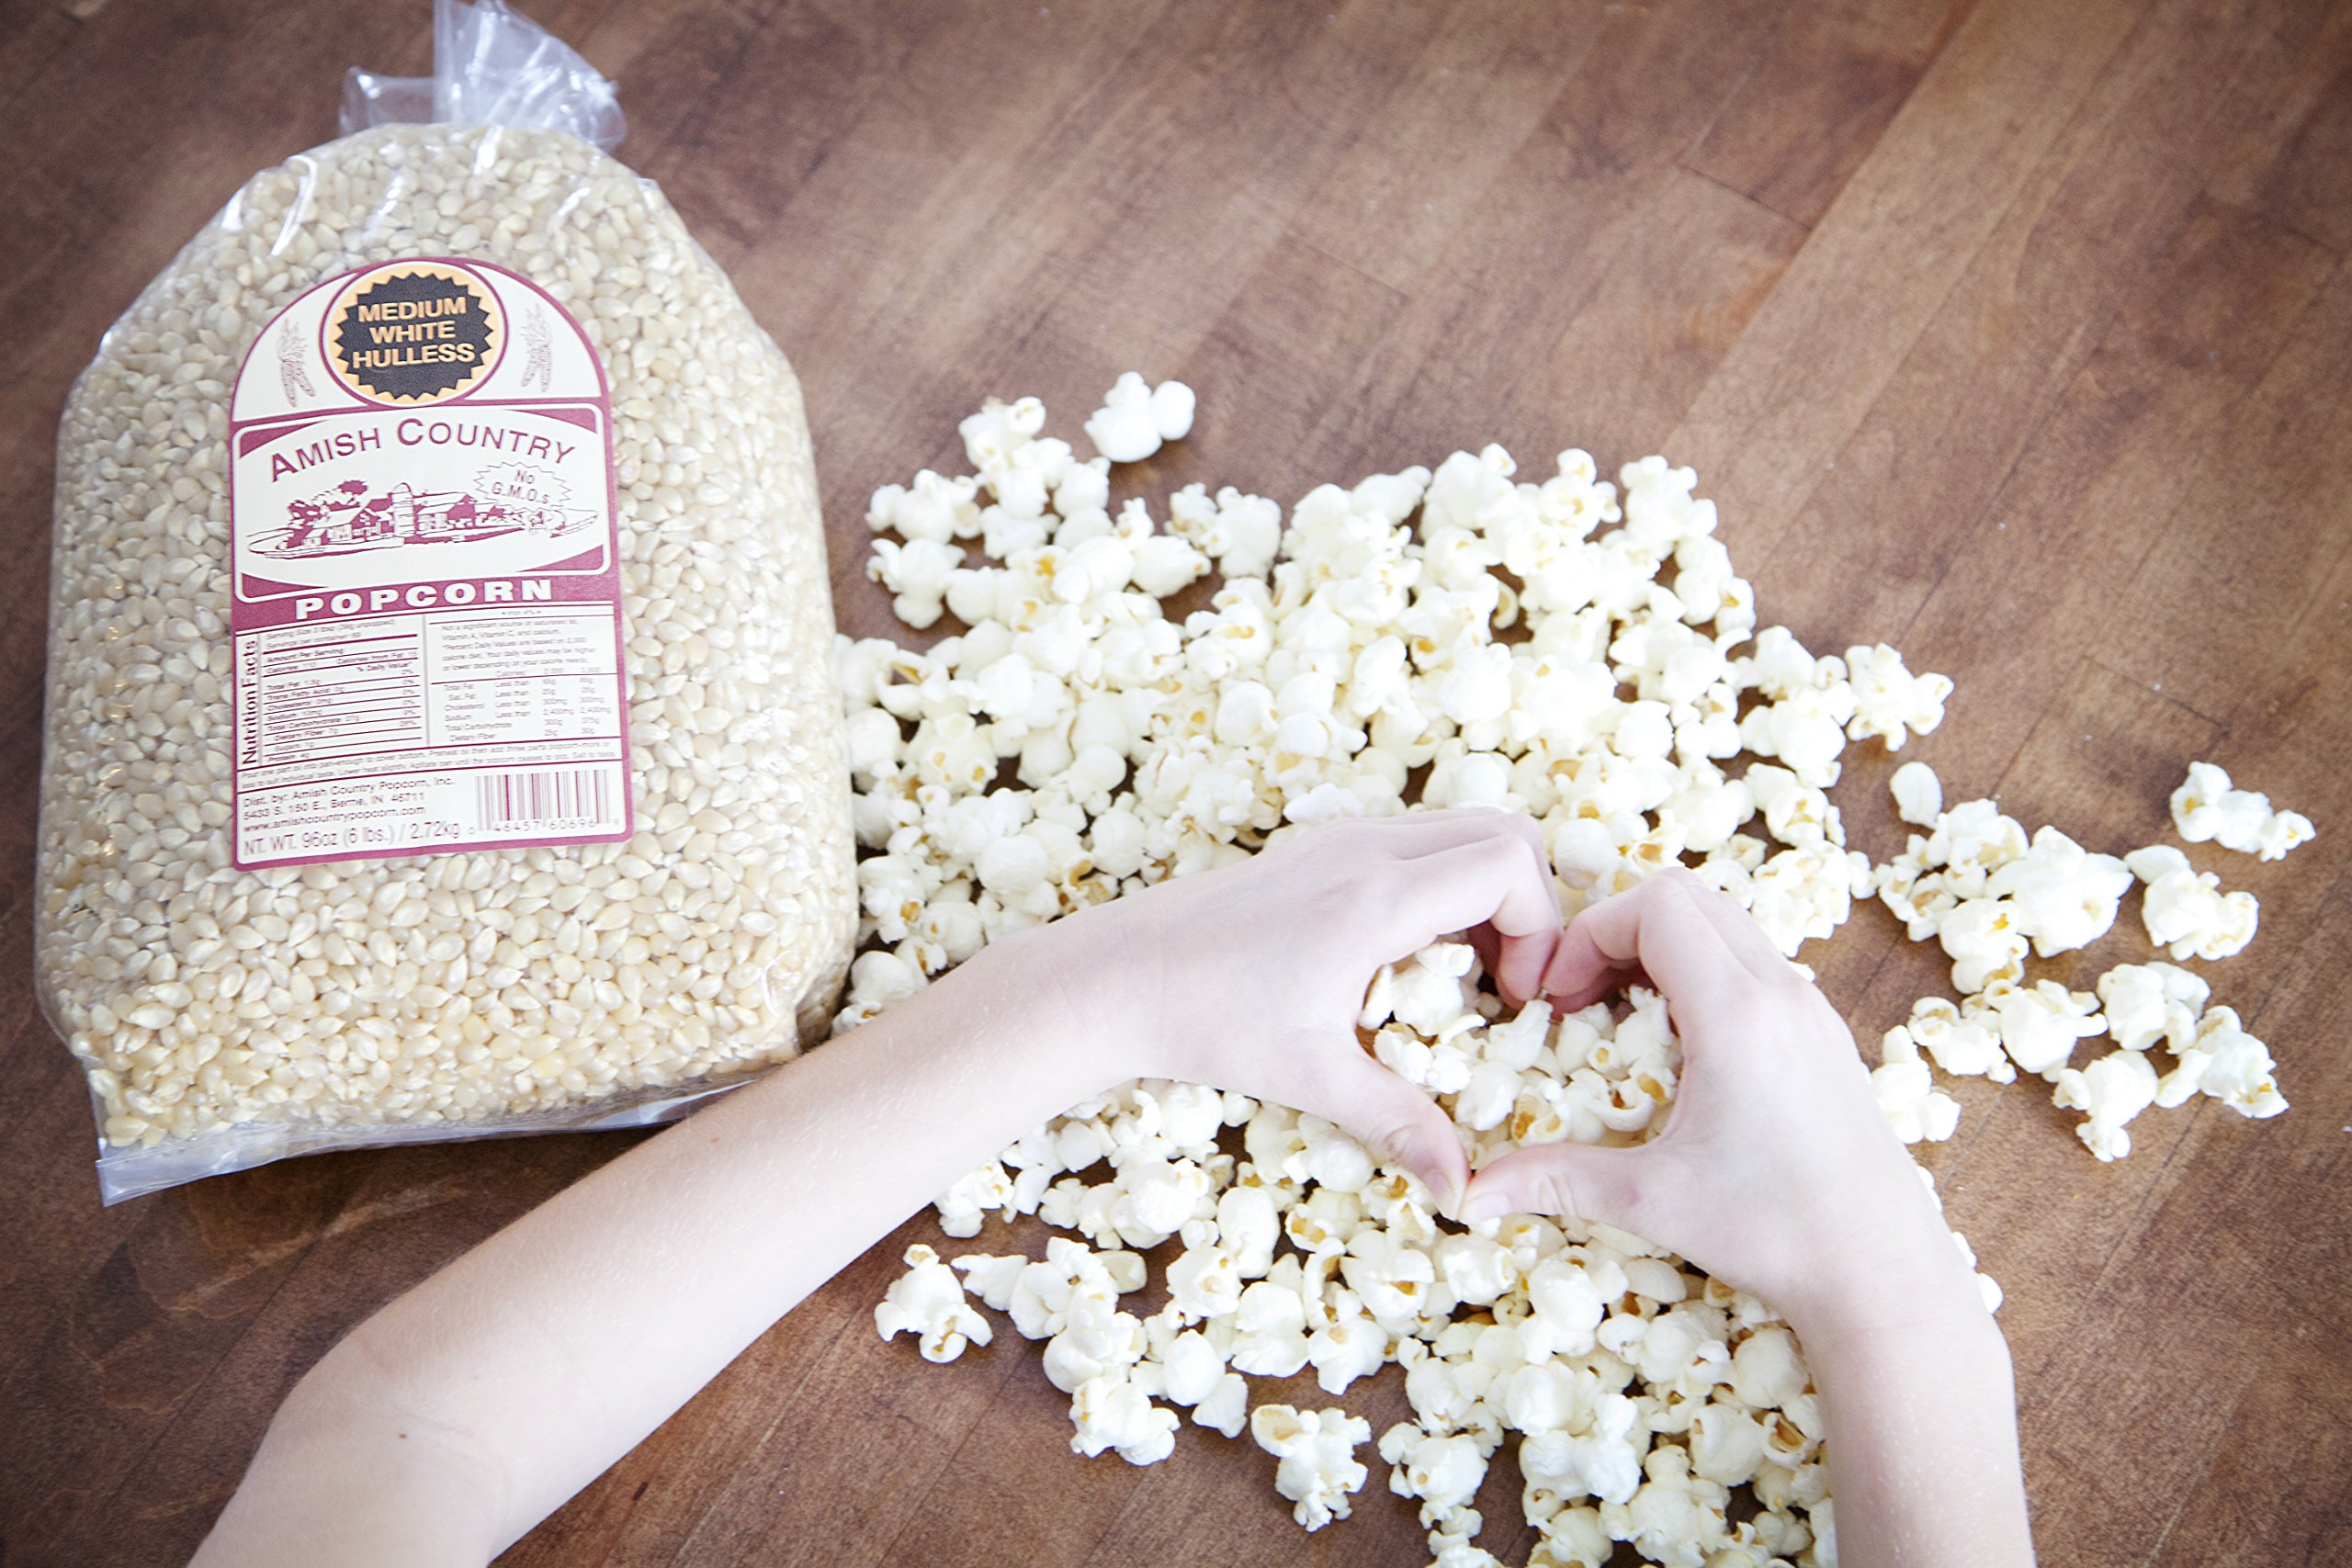 Amish Country Popcorn - Medium White (6 Pound Bag) Popcorn Kernels with Recipe Guide, Old Fashioned, Non GMO, Gluten Free, Microwaveable, Stovetop and Air Popper Friendly by Amish Country Popcorn (Image #3)